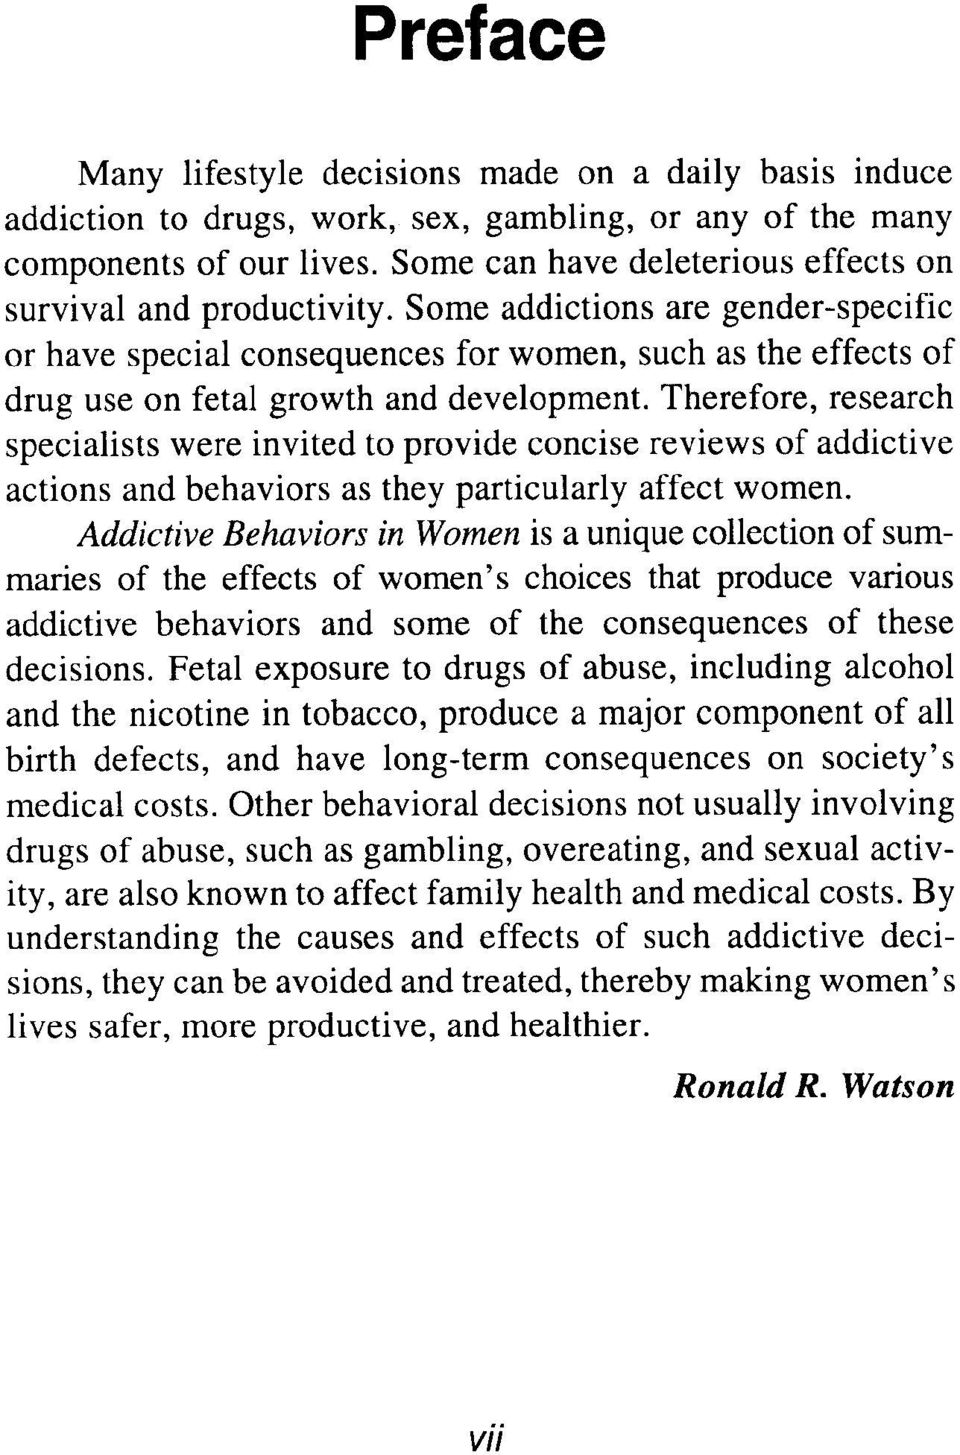 Some addictions are gender-specific or have special consequences for women, such as the effects of drug use on fetal growth and development.